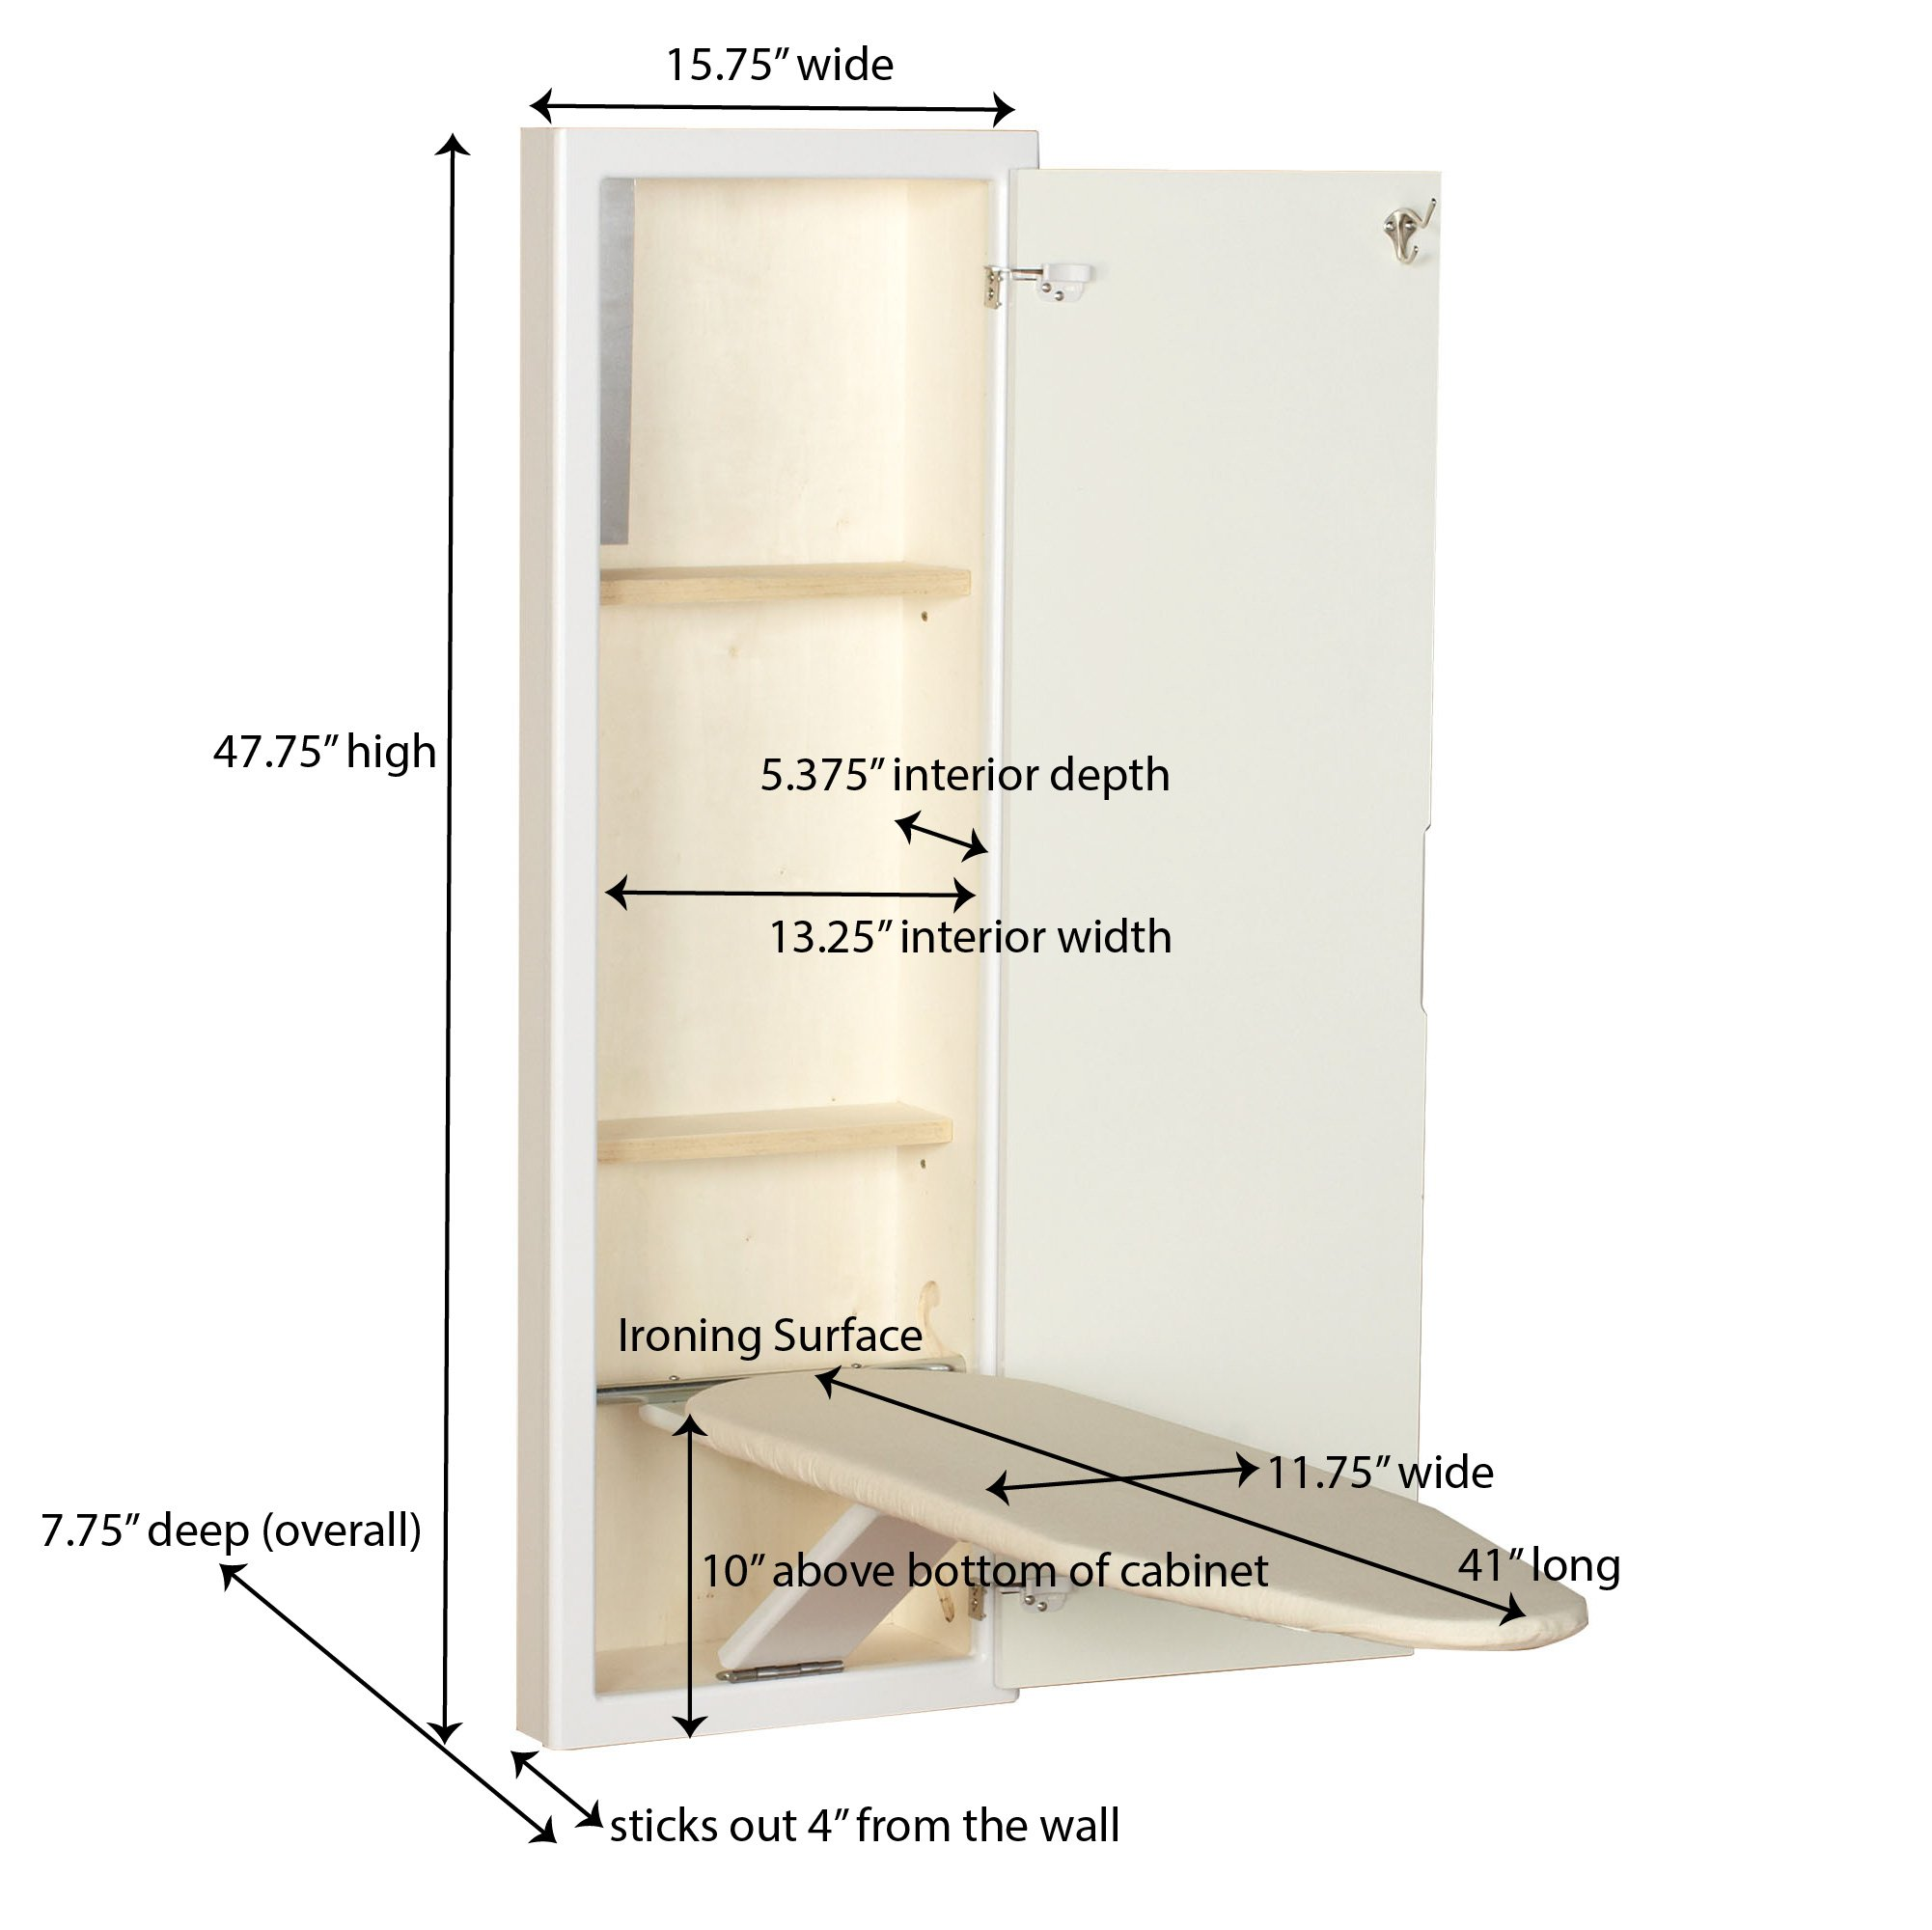 Household Essentials 18100-1 StowAway In-Wall Ironing Board Cabinet with Built In Ironing Board | White | Cut into Wall to Install by Household Essentials (Image #5)